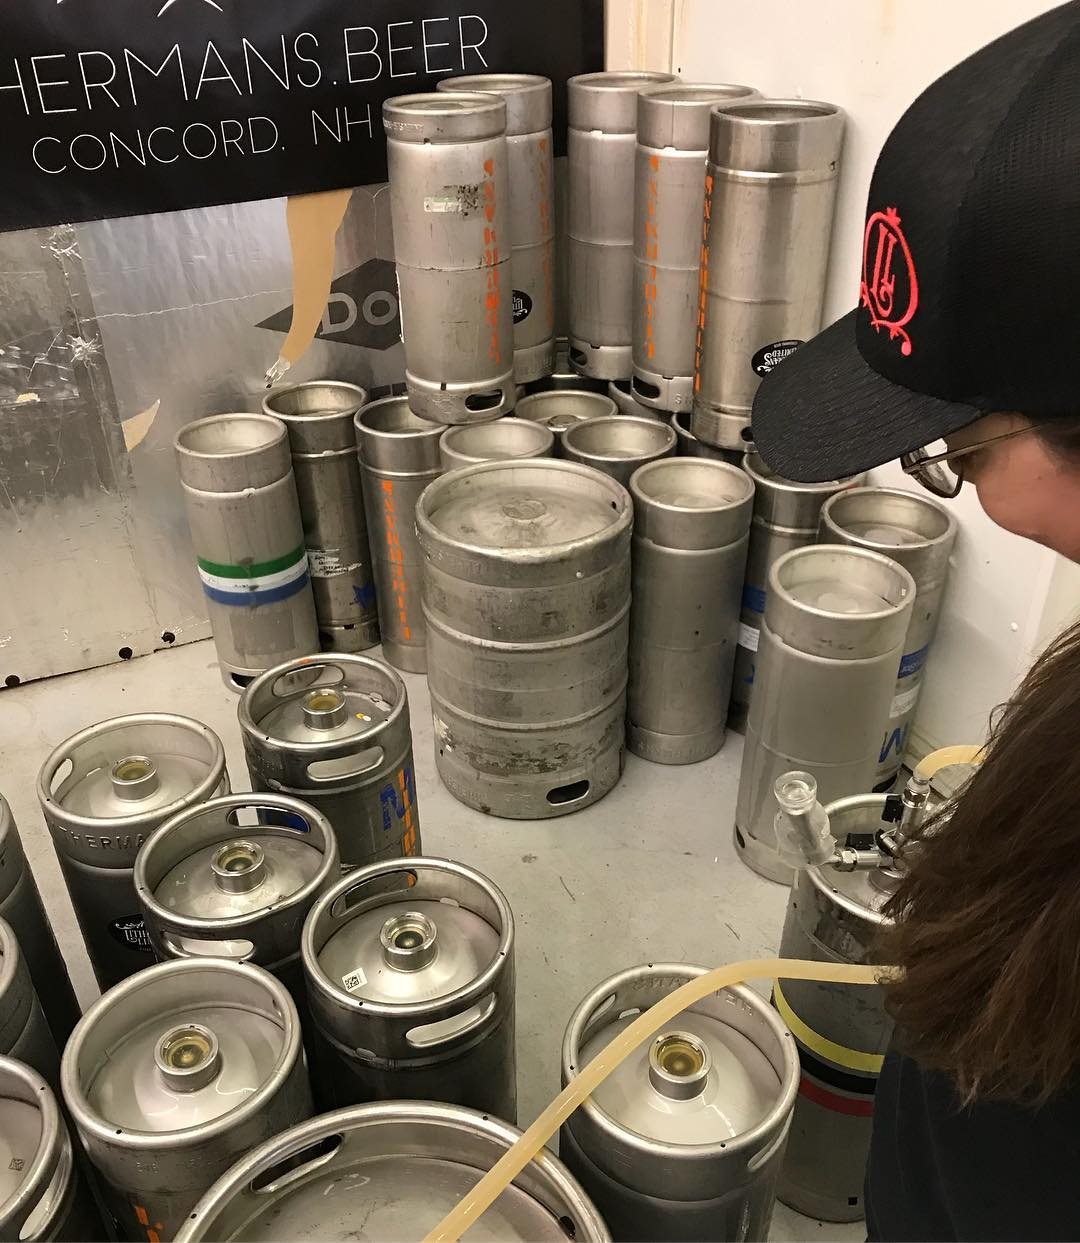 Fresh batch of Misguided Angel going into kegs today. Be on the look out for it in draft in the Concord area!